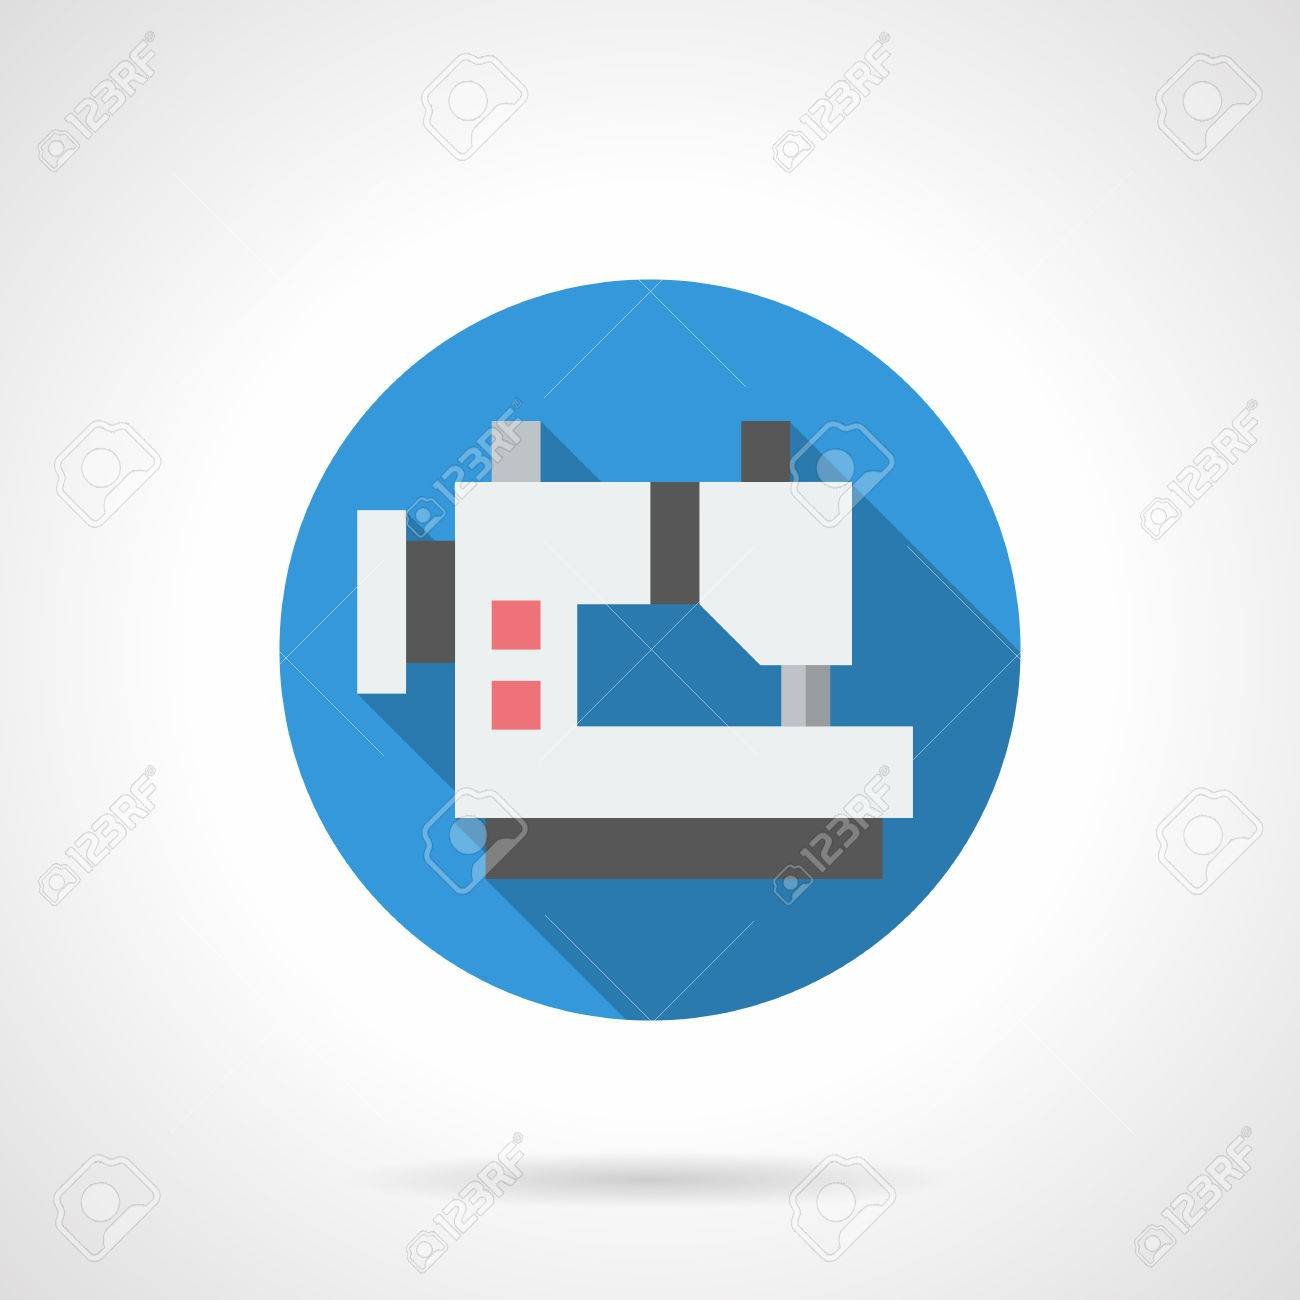 Sewing machine symbol electrical equipment for tailoring atelier sewing machine symbol electrical equipment for tailoring atelier commercial manufacturing and services repair buycottarizona Choice Image